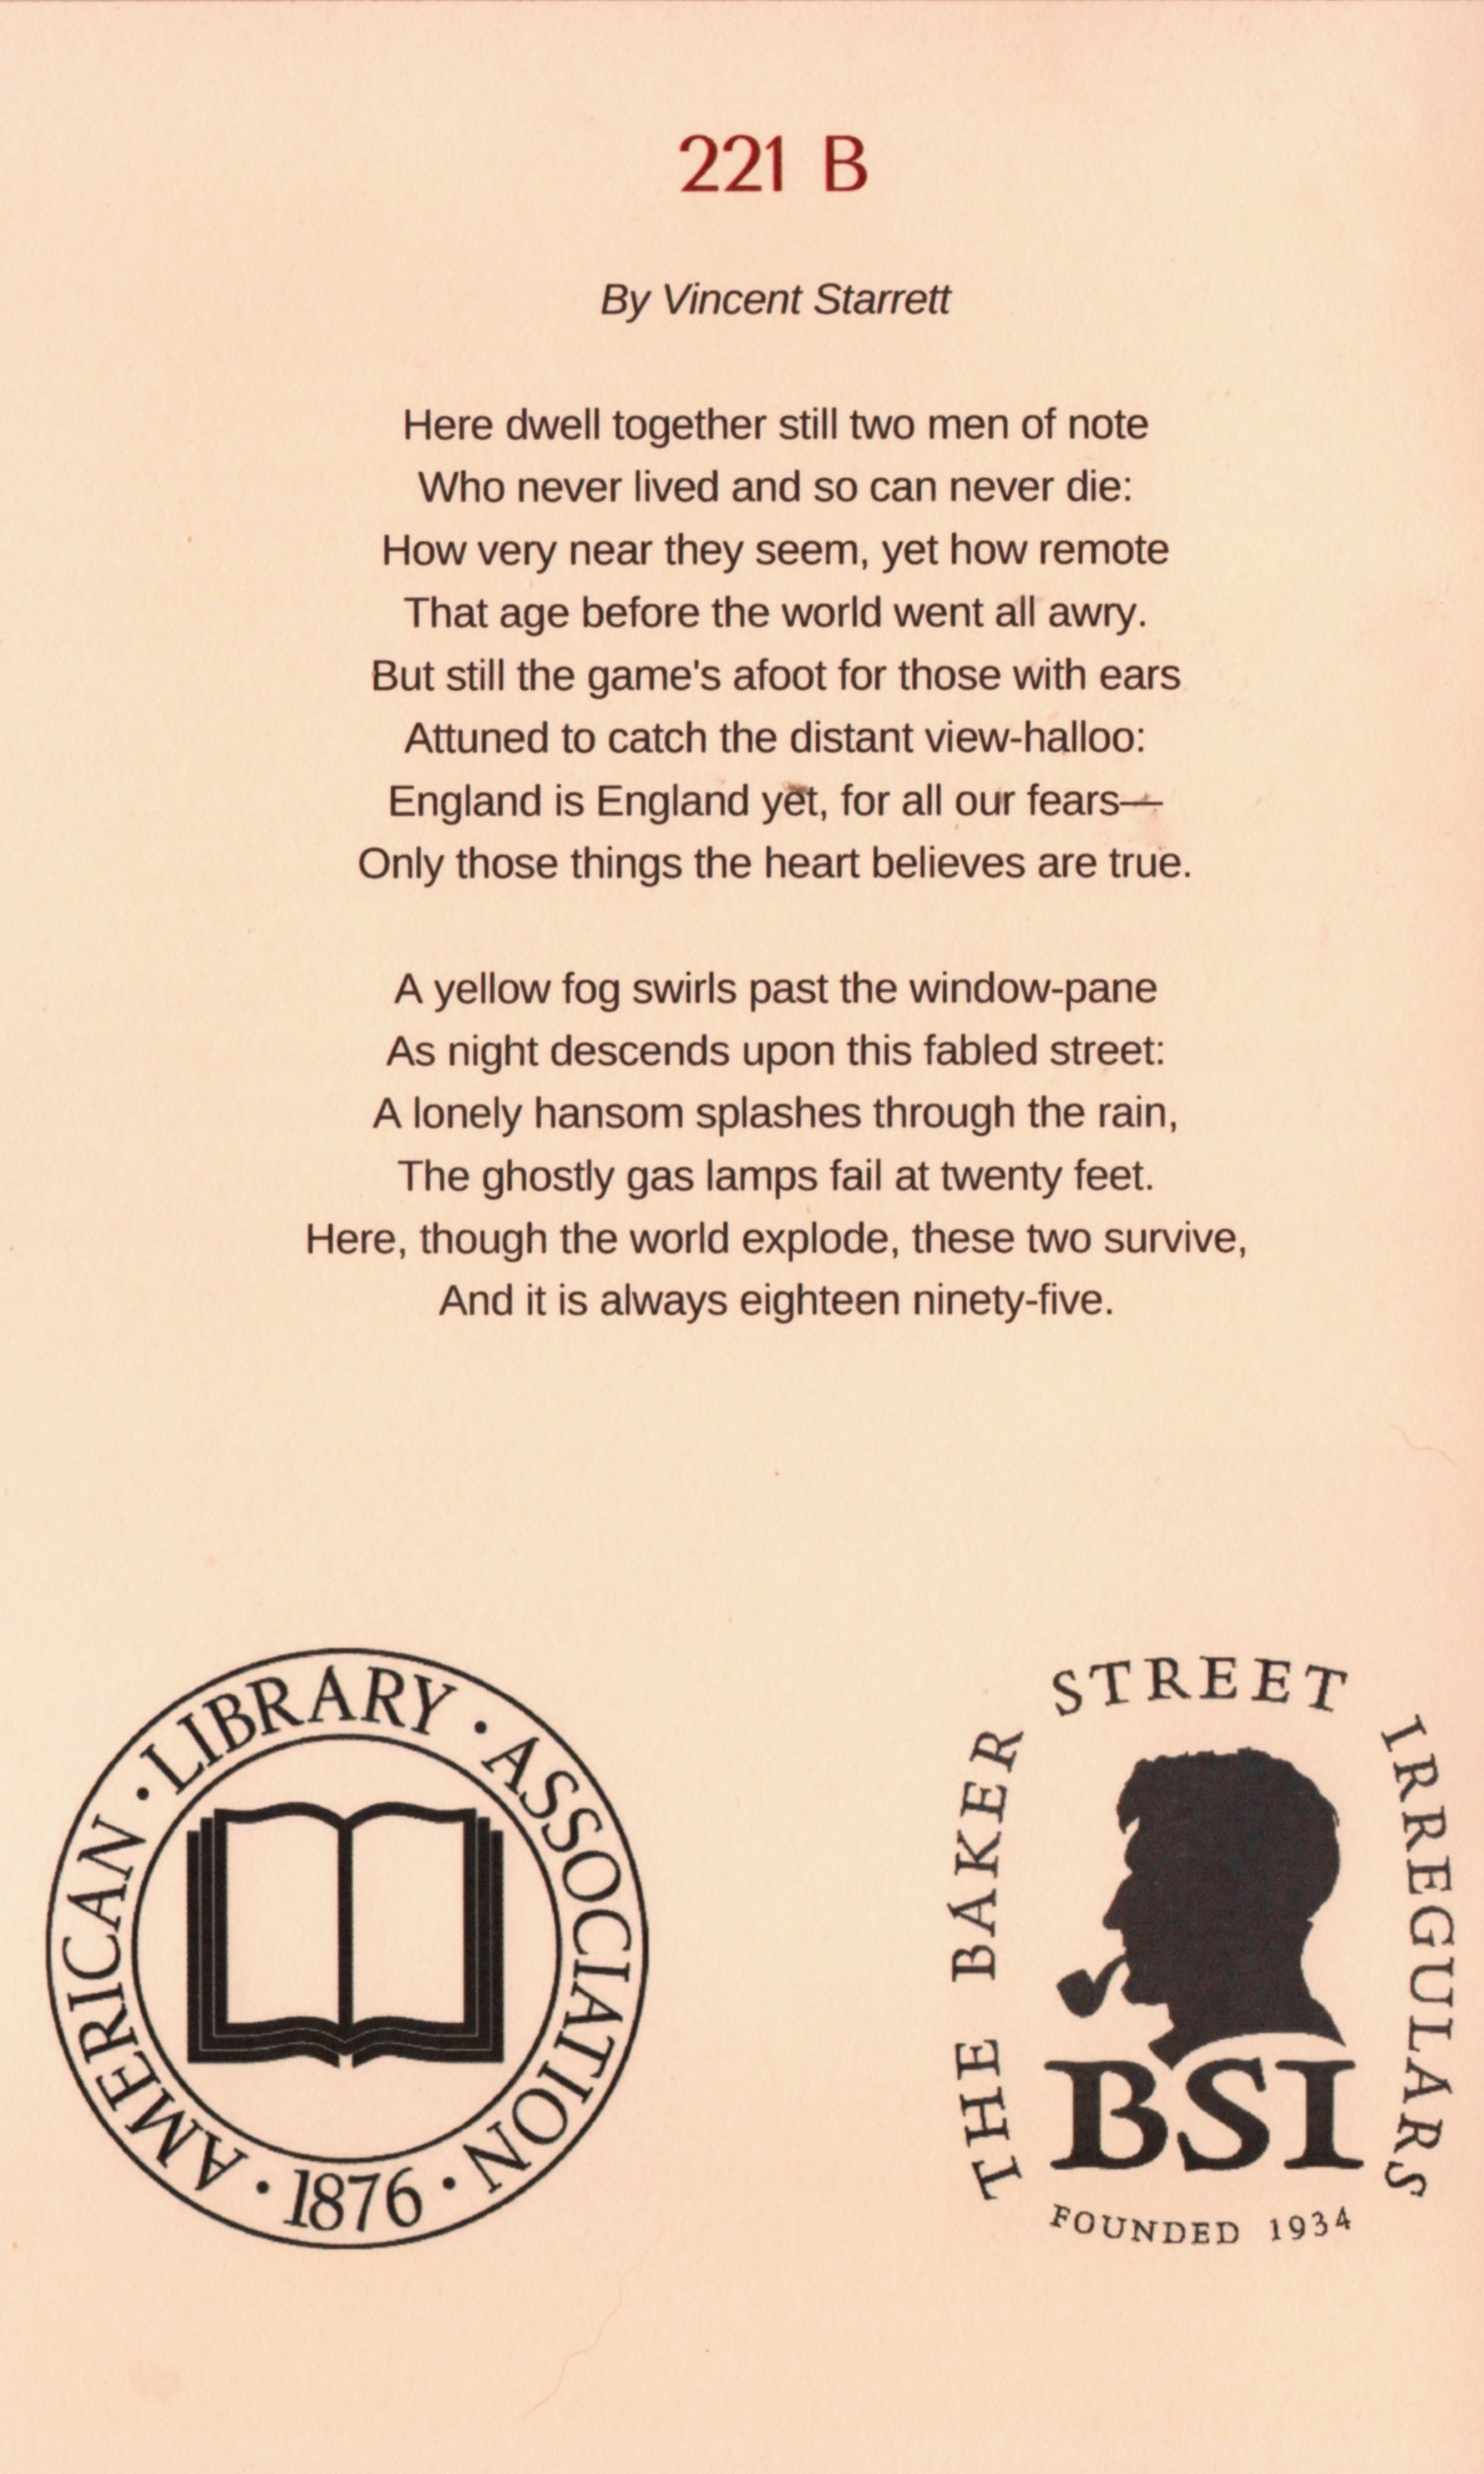 A page from the 50th anniversary program of The Sub-Librarians Scion of the Baker Street Irregulars in the American Library Association, held in Chicago in 2017.